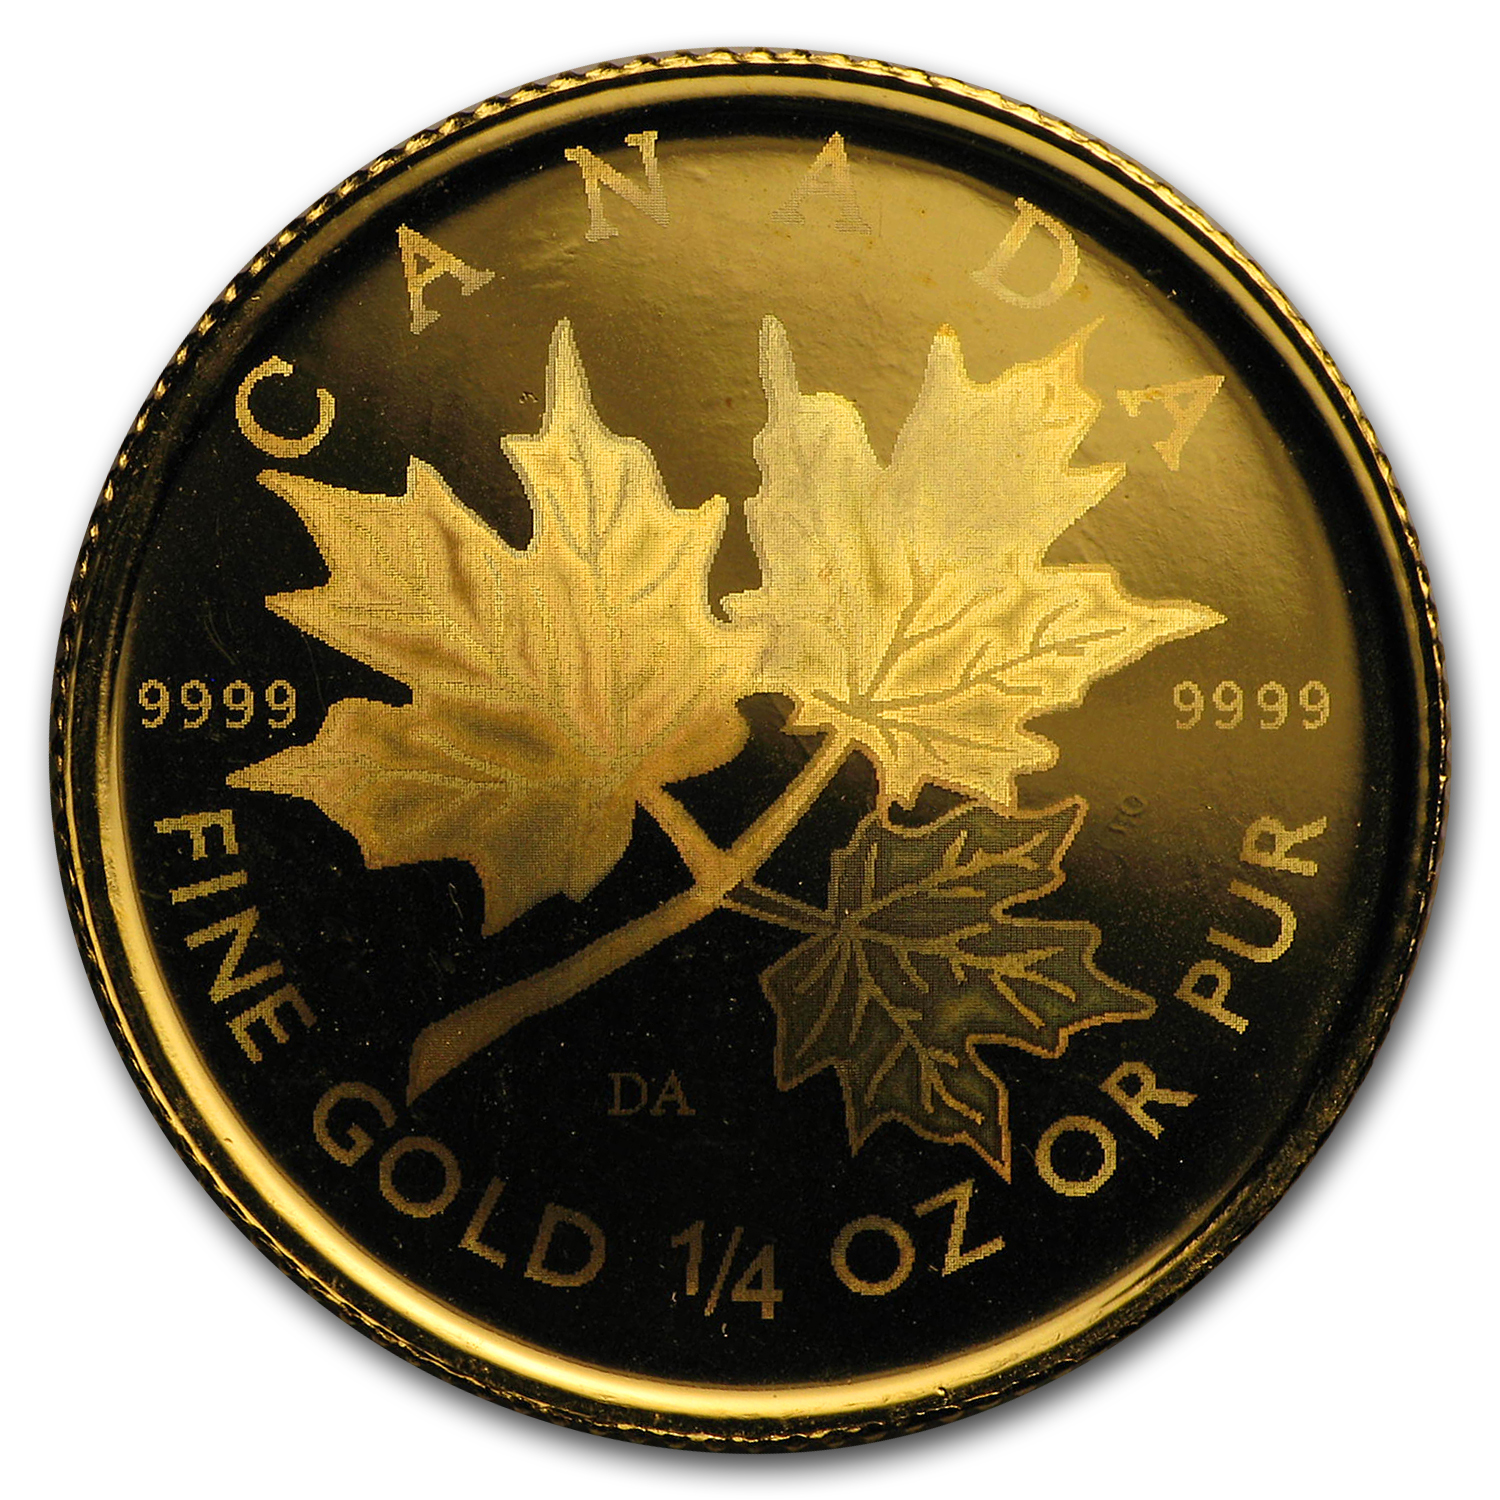 2001 1/4 oz Hologram Gold Canadian Maple Leaf